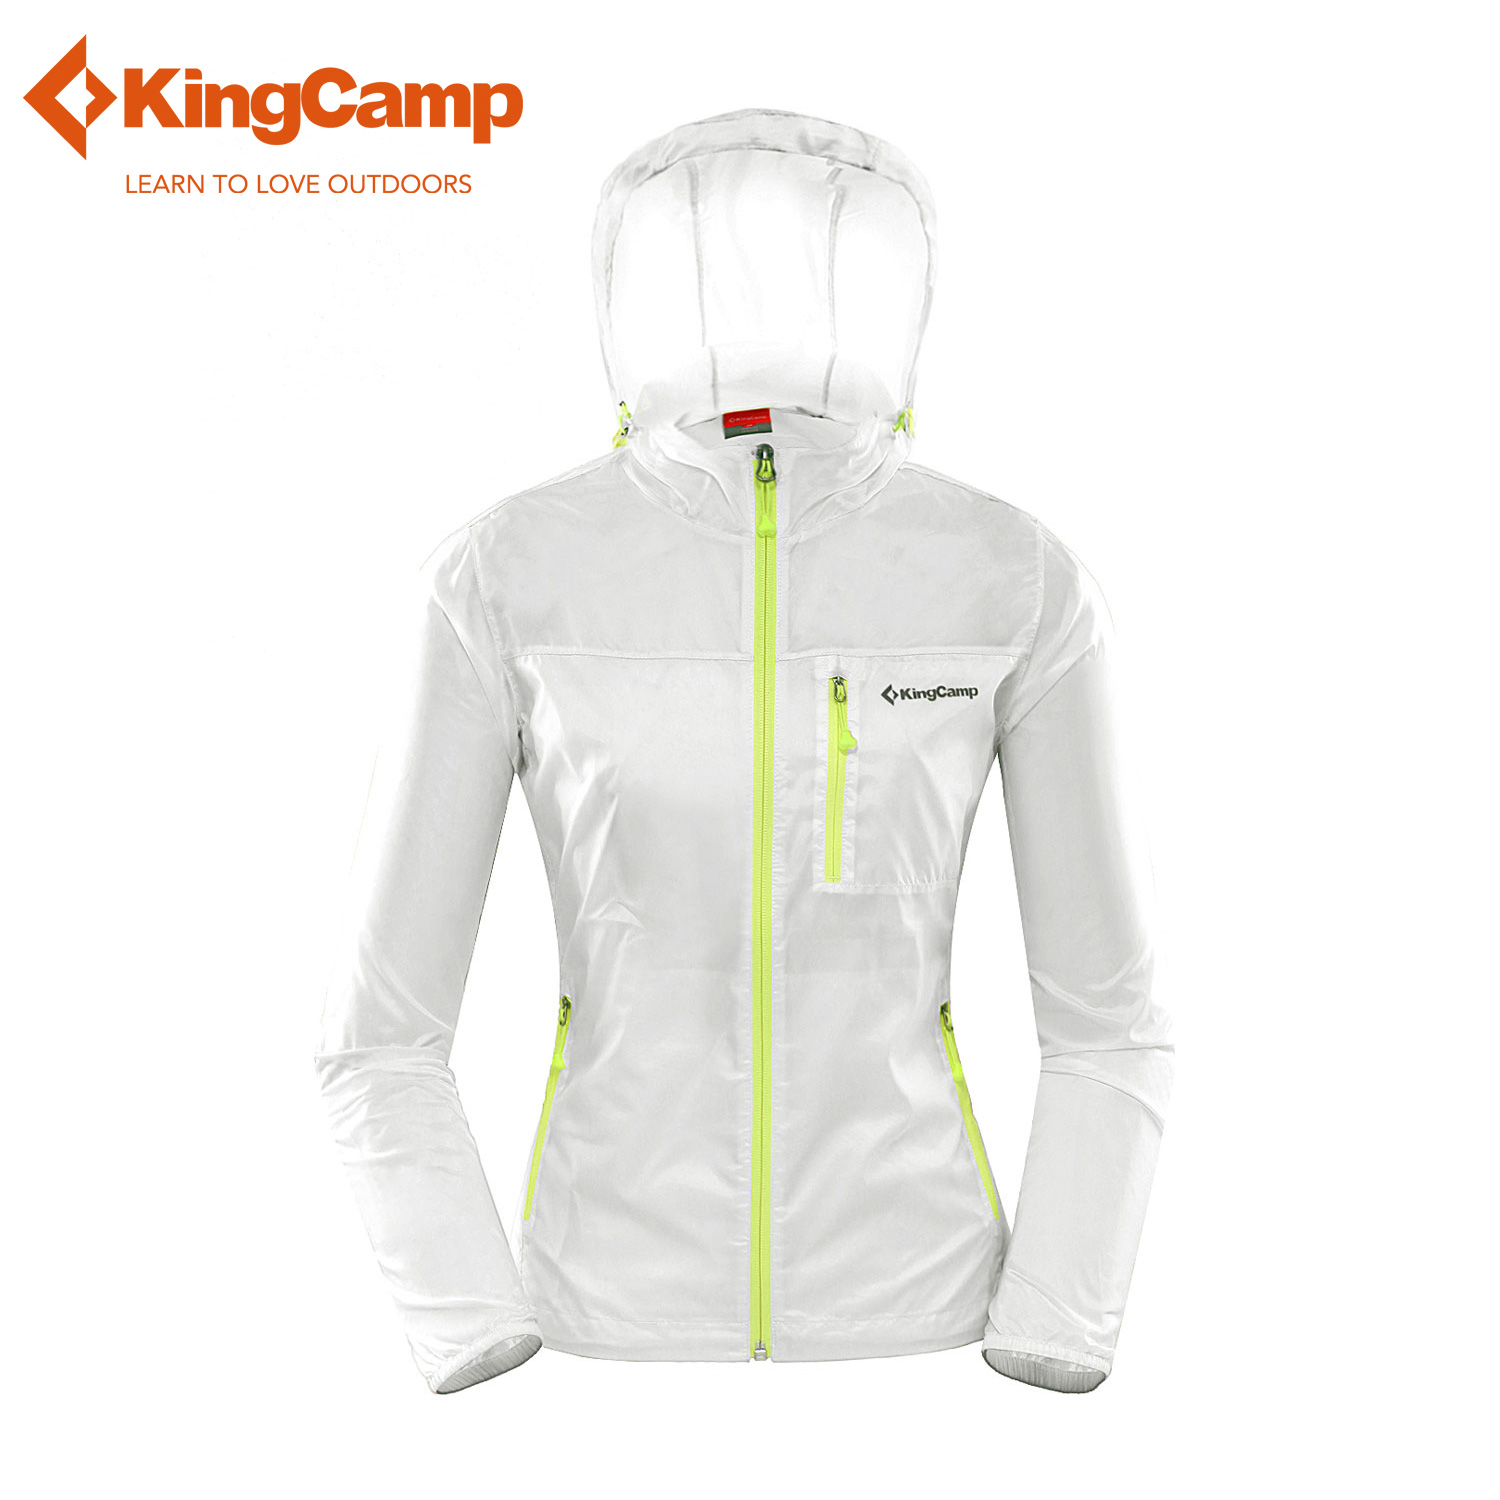 KingCamp Active Outdoor Lightweight Waterproof Front Zip Hooded Jacket Women Cycling Running Sport Easy Carry Wind